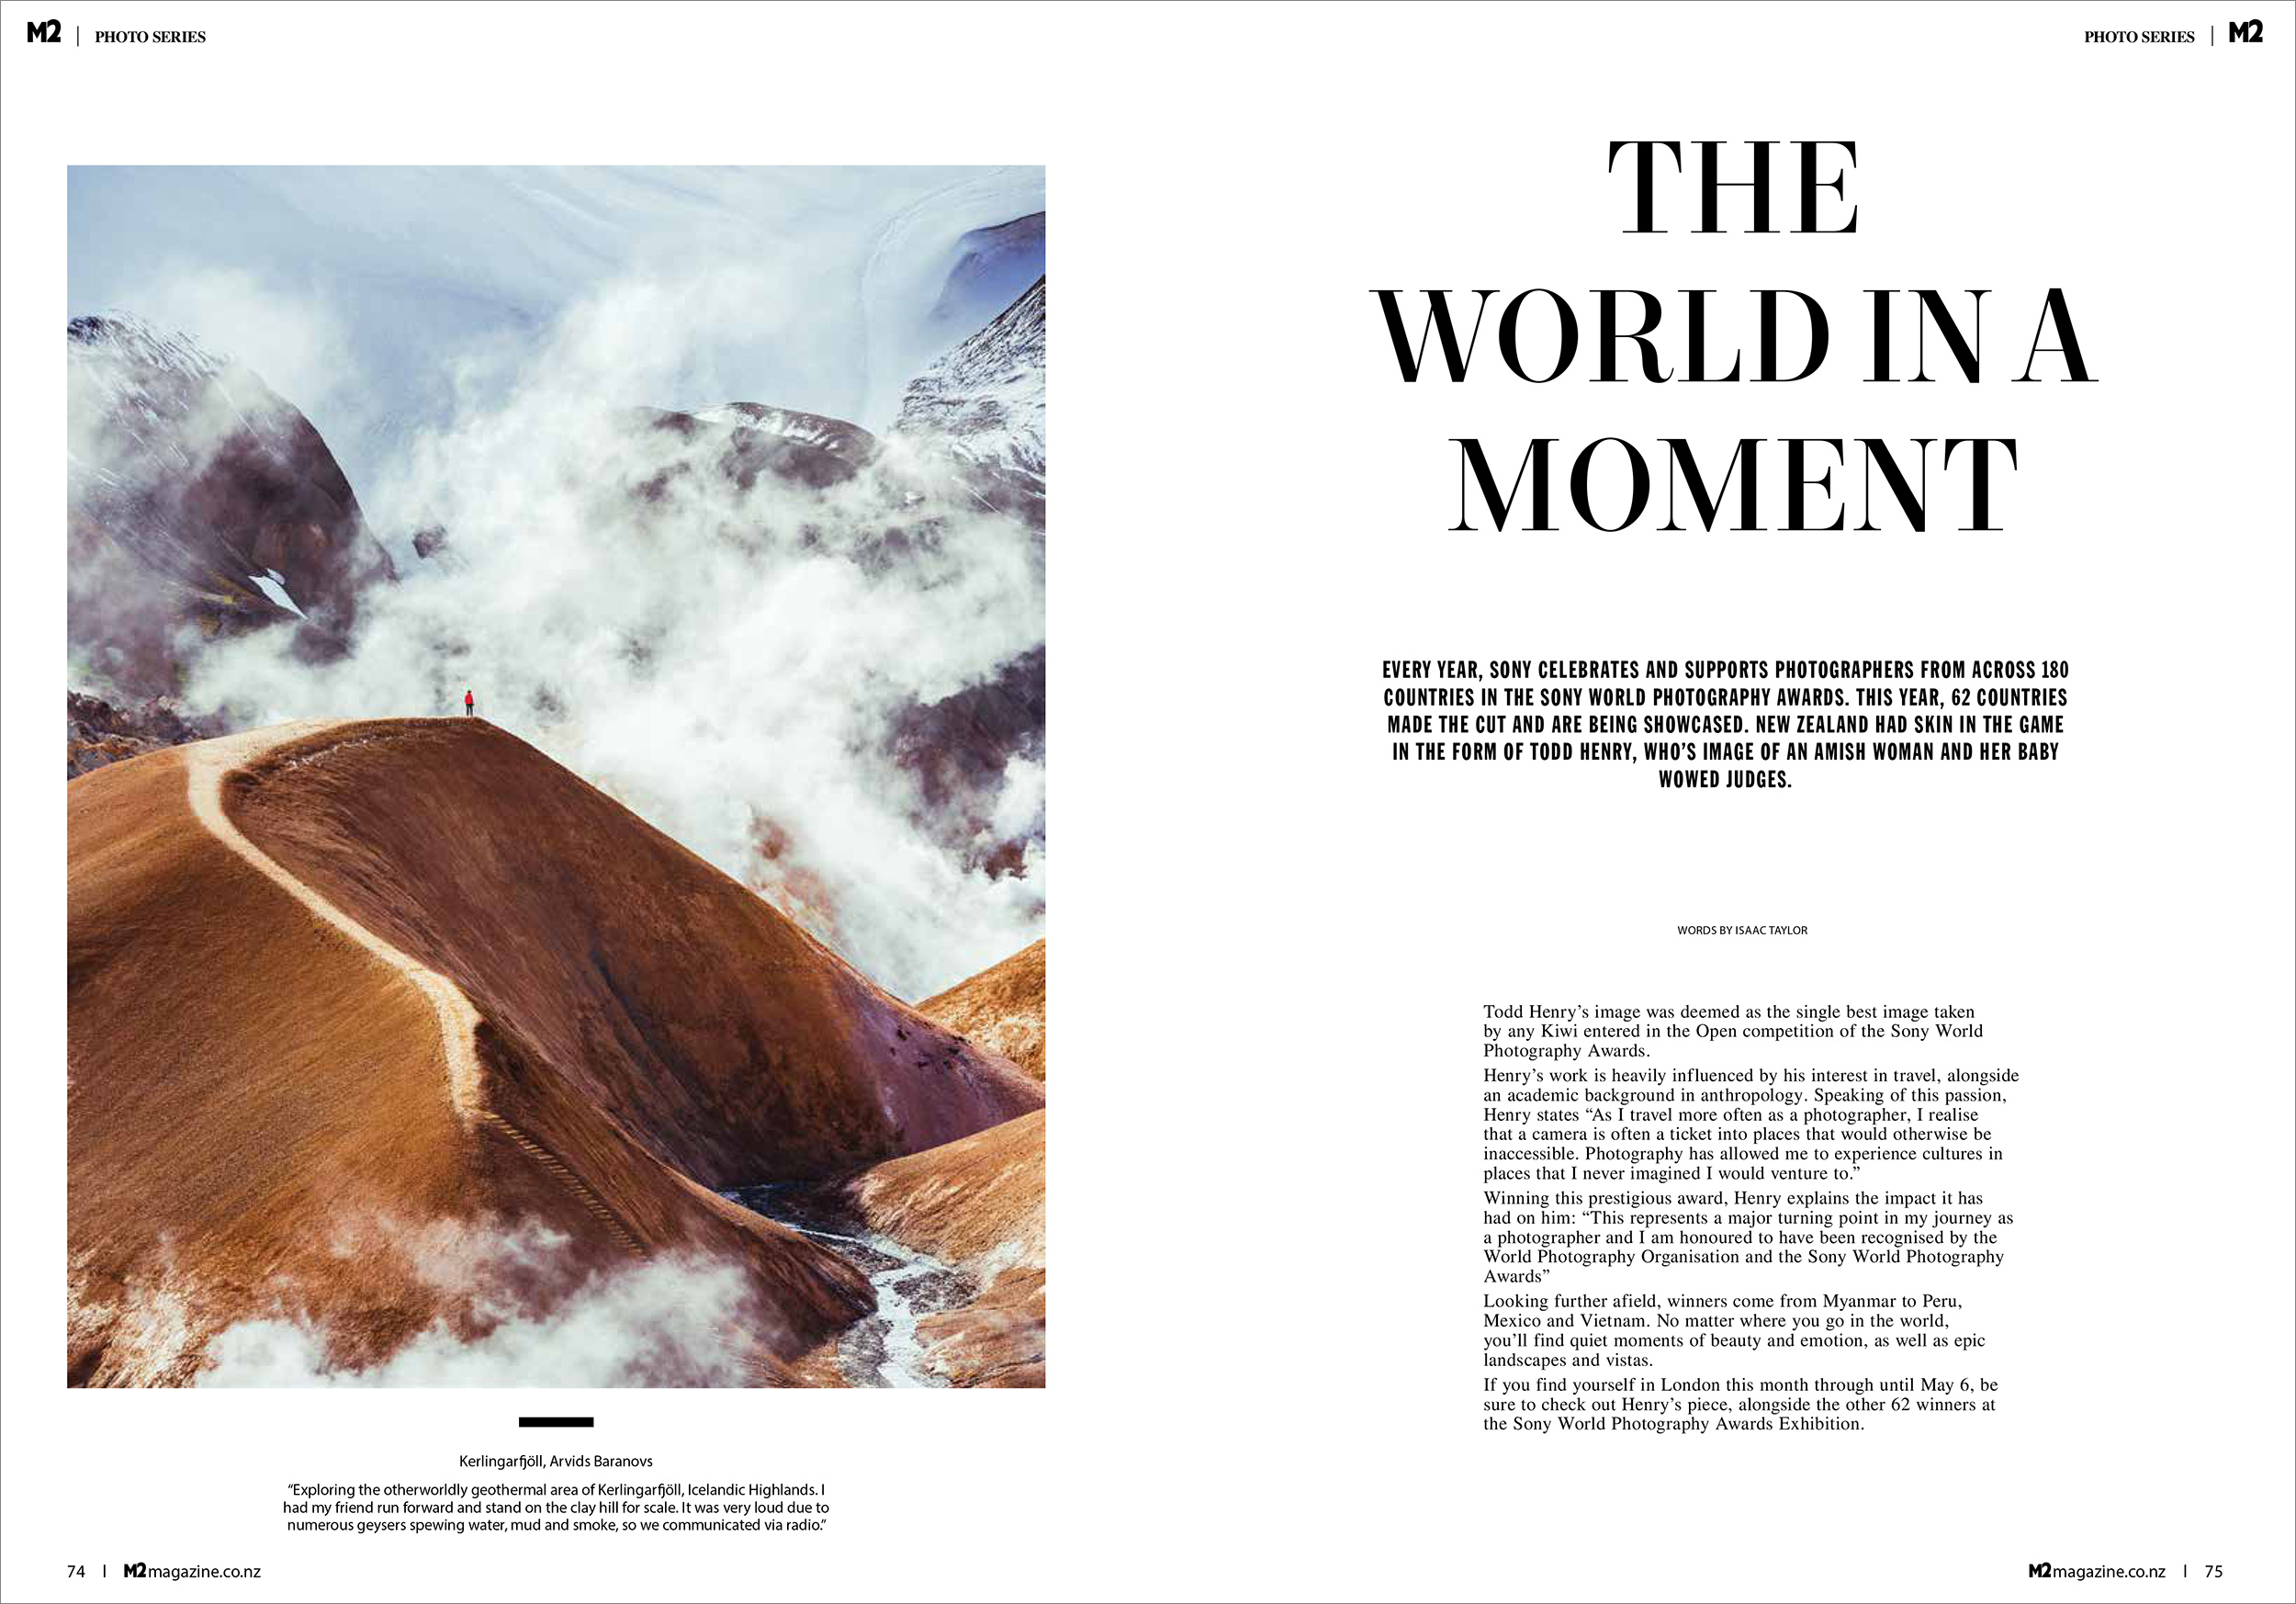 M2 Magazine, New Zealand April 2019   Print   m2magazine.co.nz/the-world-in-a-moment/